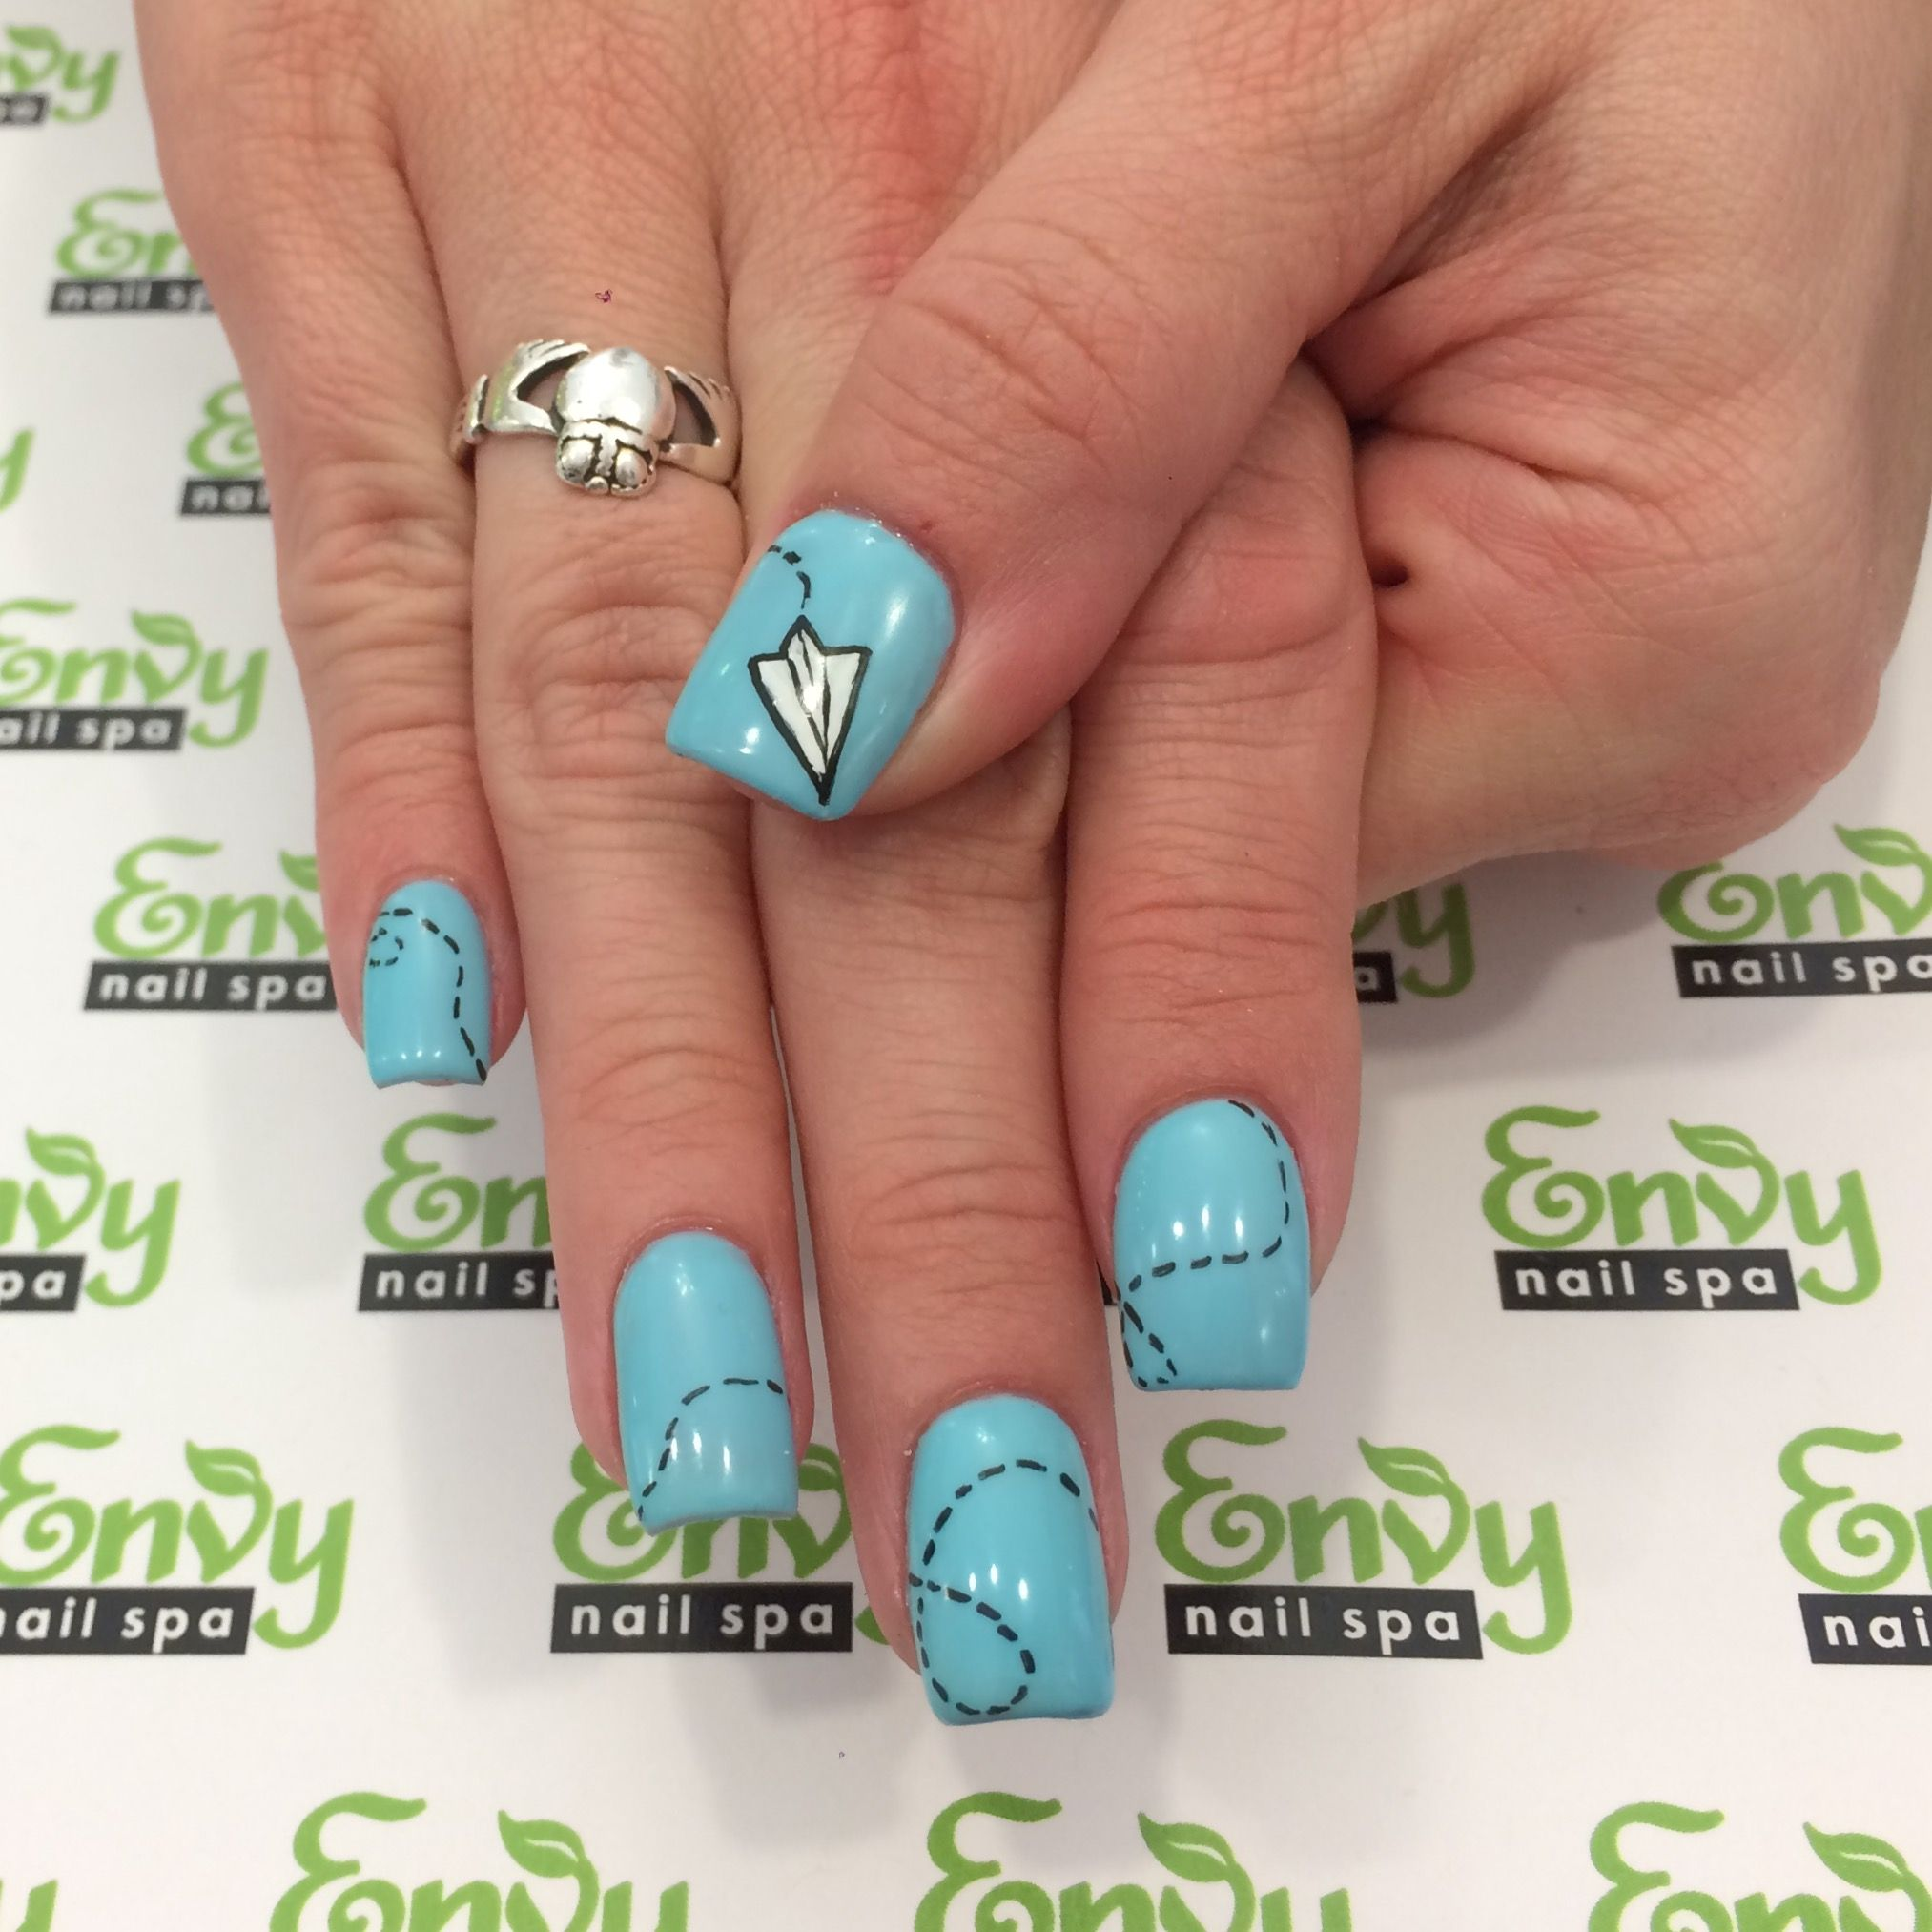 Paper Airplane Nails - Envy Nail Spa | Misc. | Pinterest | Nail envy ...